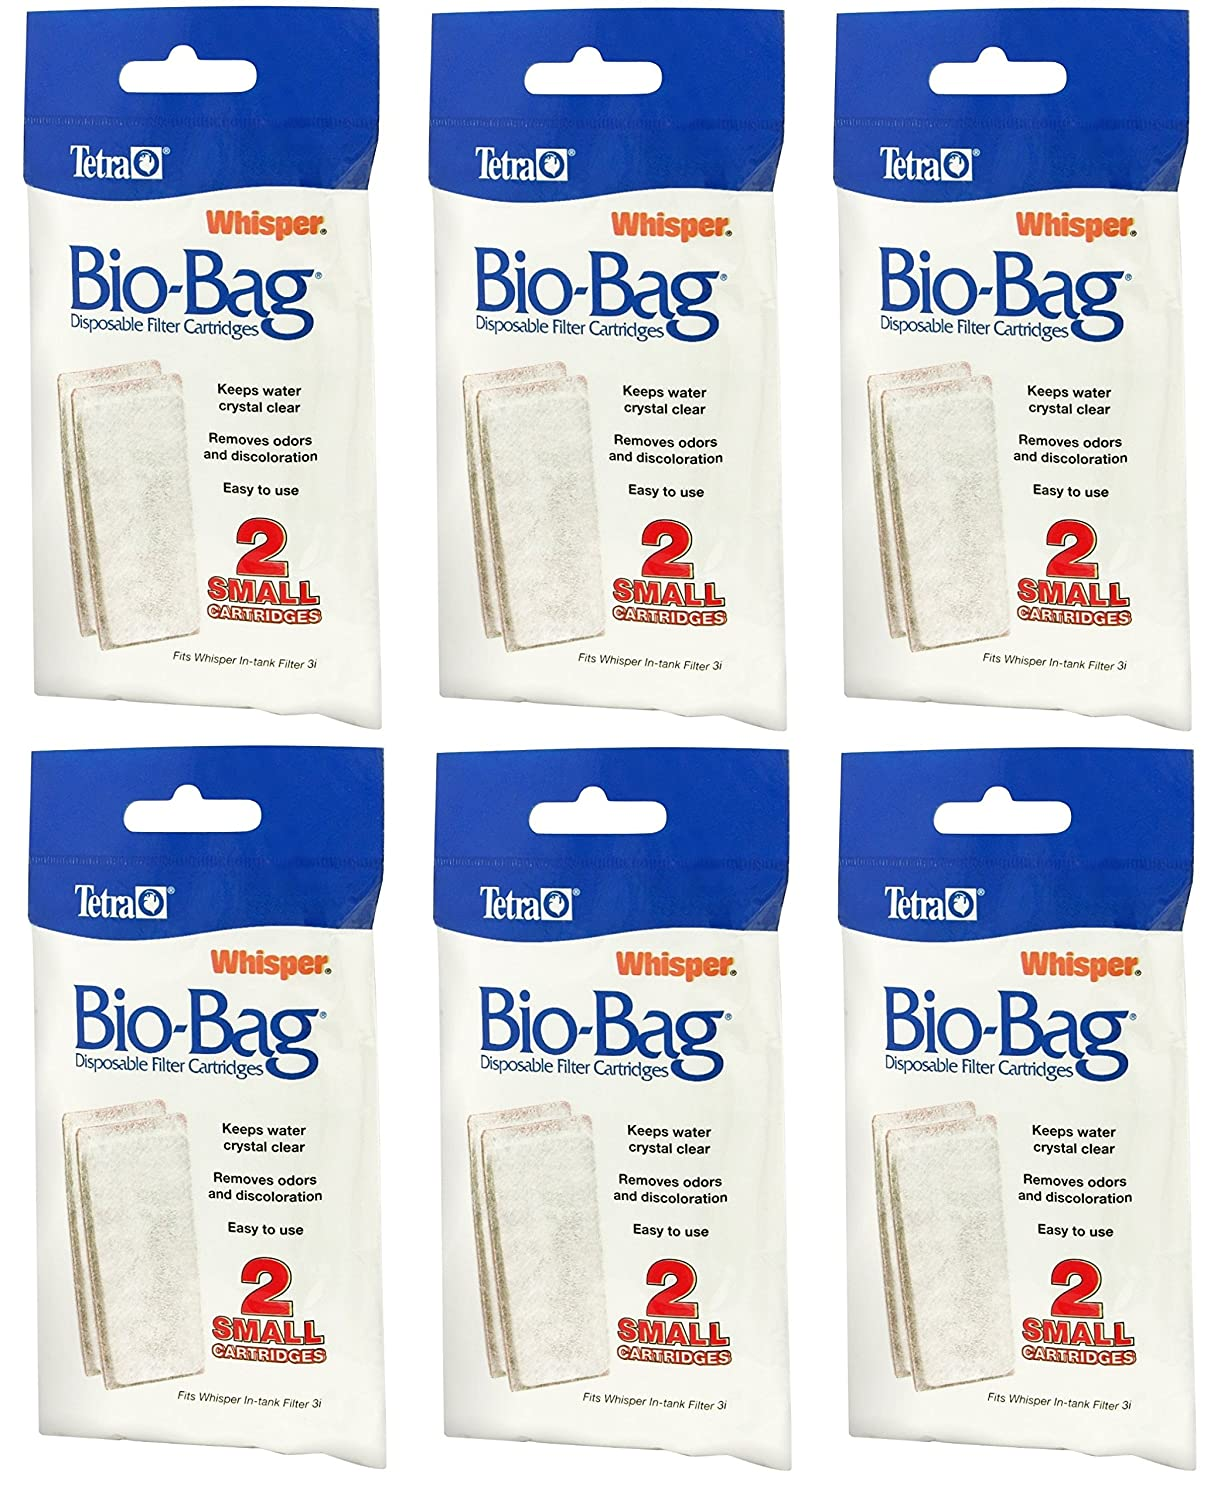 Tetra Whisper Assembled Bio-Bag Filter Cartridges Small 12 Total Filters (6 Packs with 2 Filters per Pack)